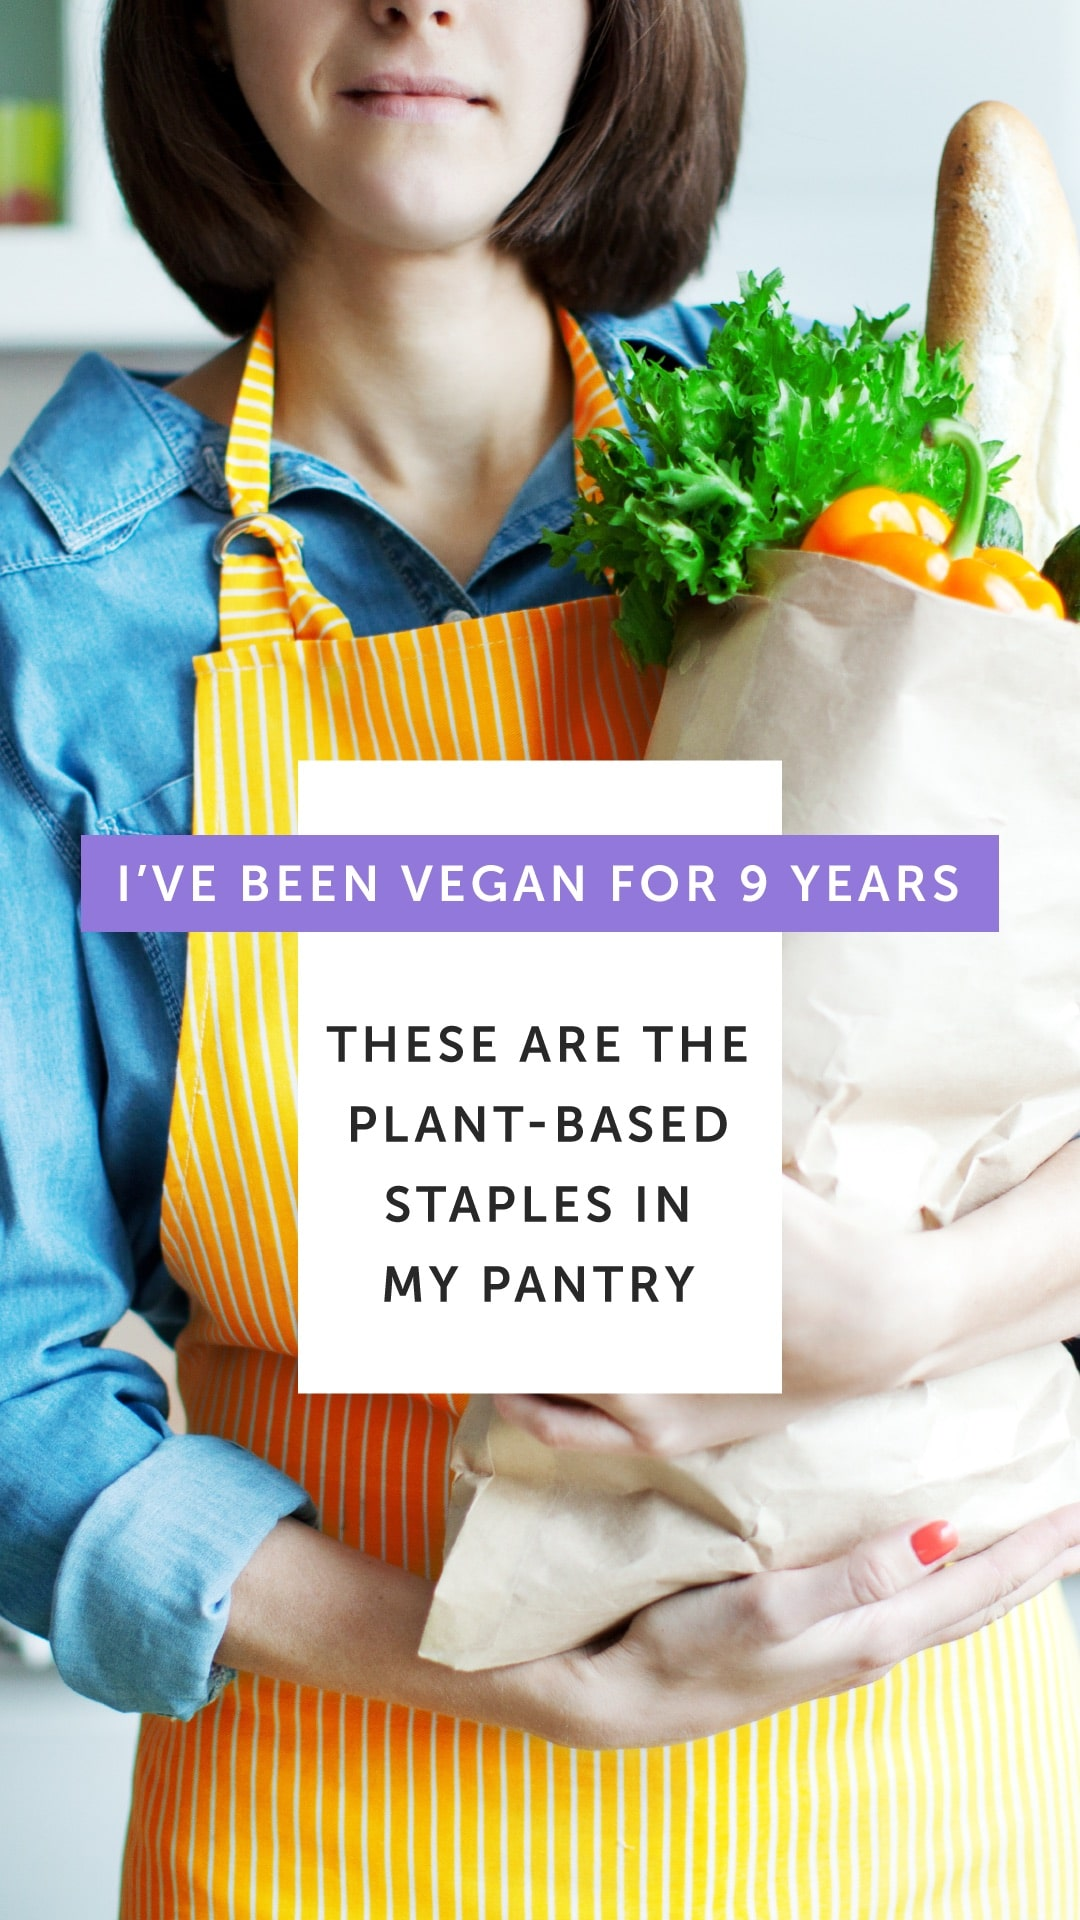 I've Been Vegan for 9 Years. These Are the Plant-Based Staples in My Pantry.